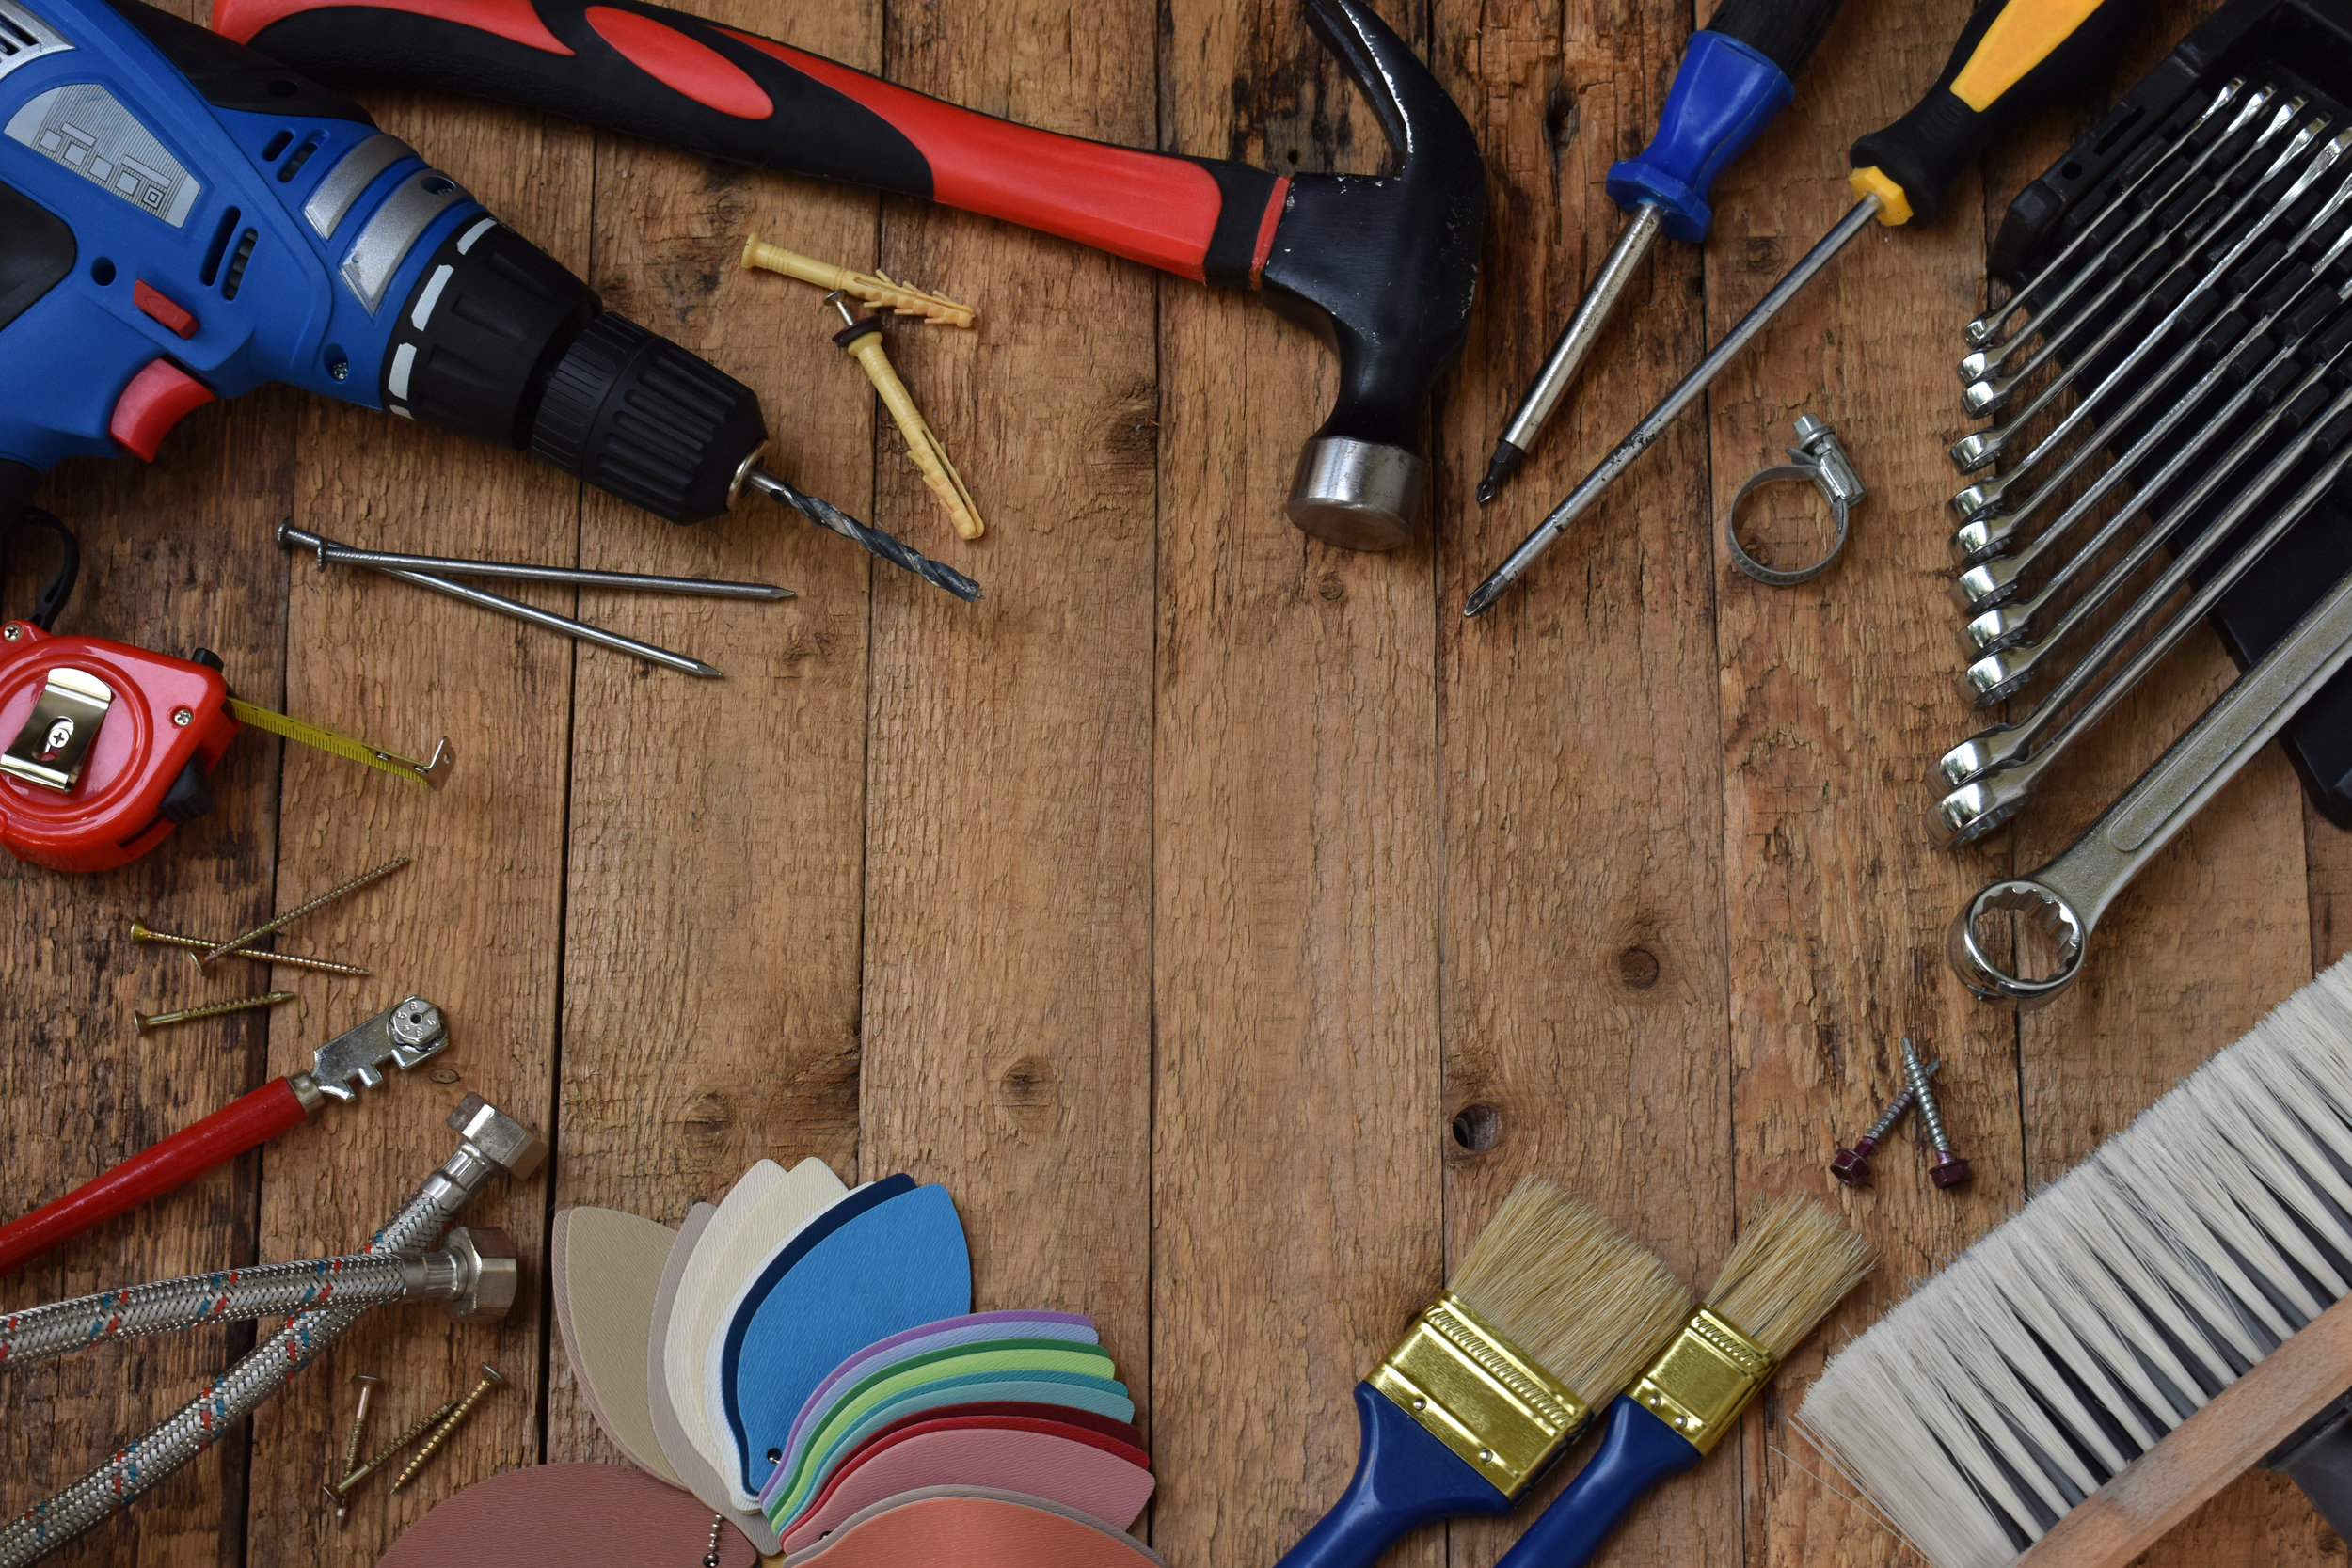 Set of tools for building and treatment on wooden background: hammer, measuring tape, drill.